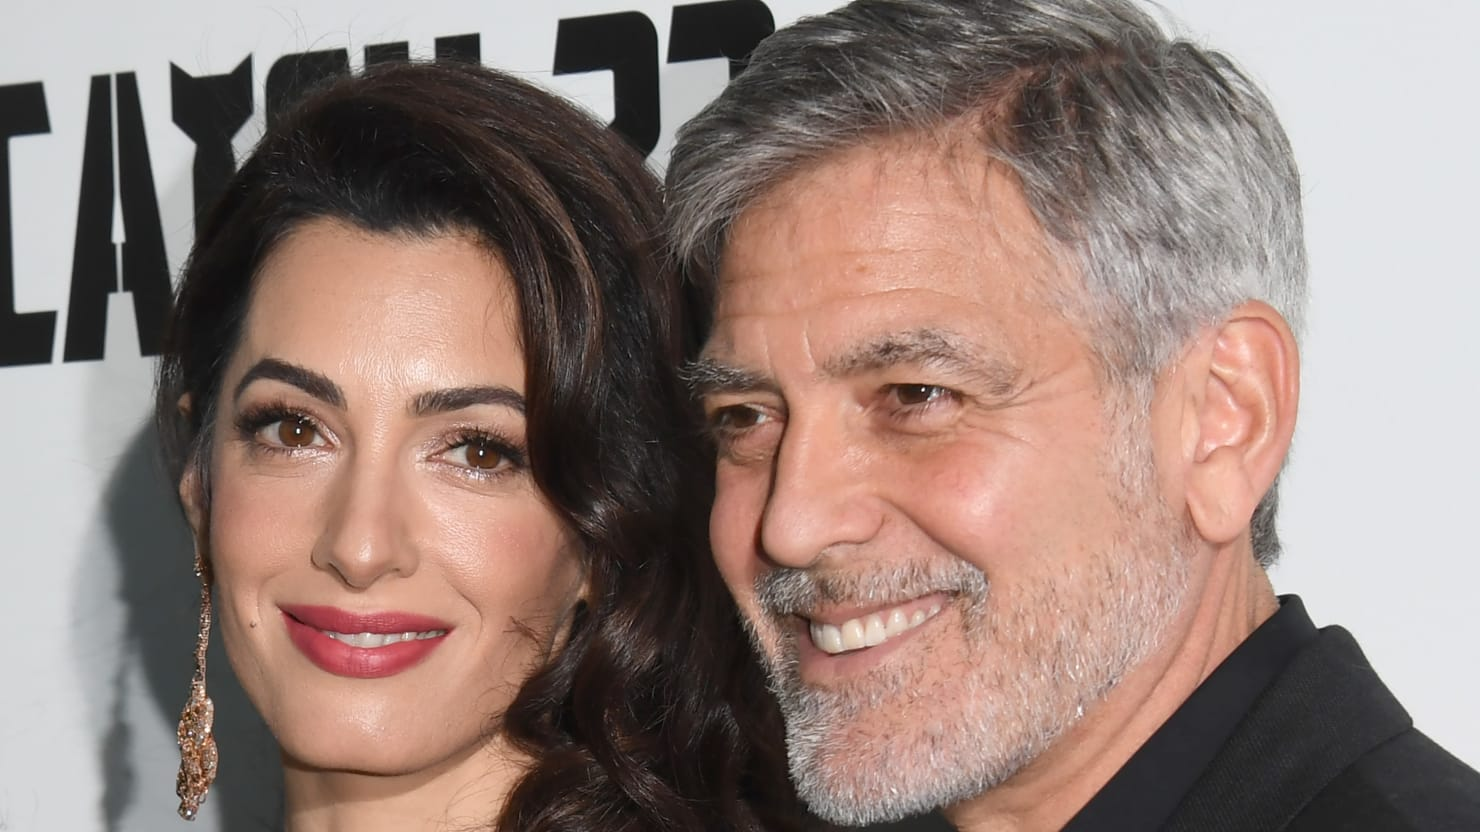 George Clooney Blows Whistle on High-Priced Summit That Used His Name